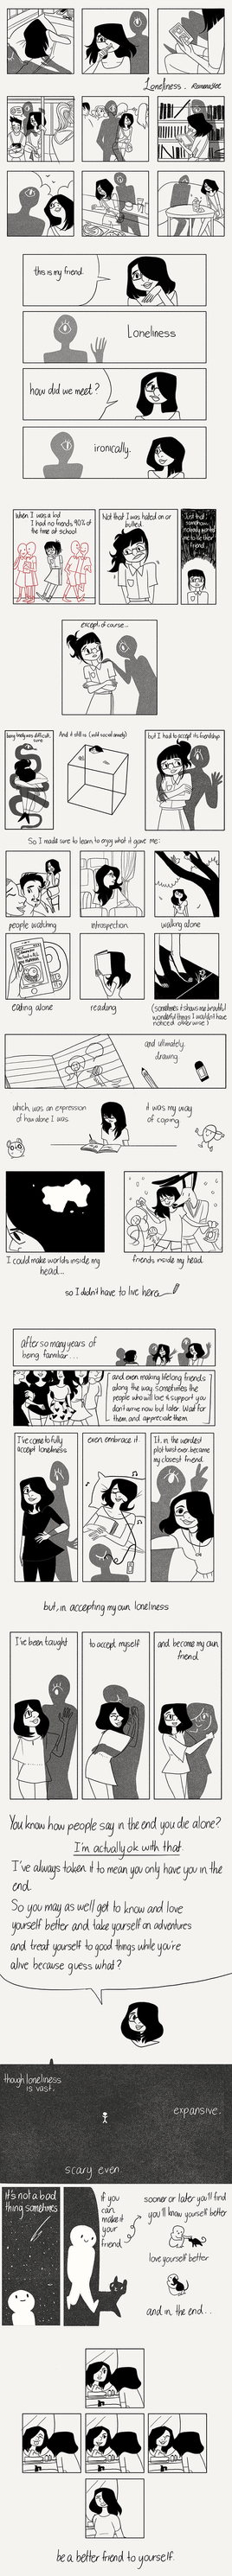 Loneliness : A Comic by reimena